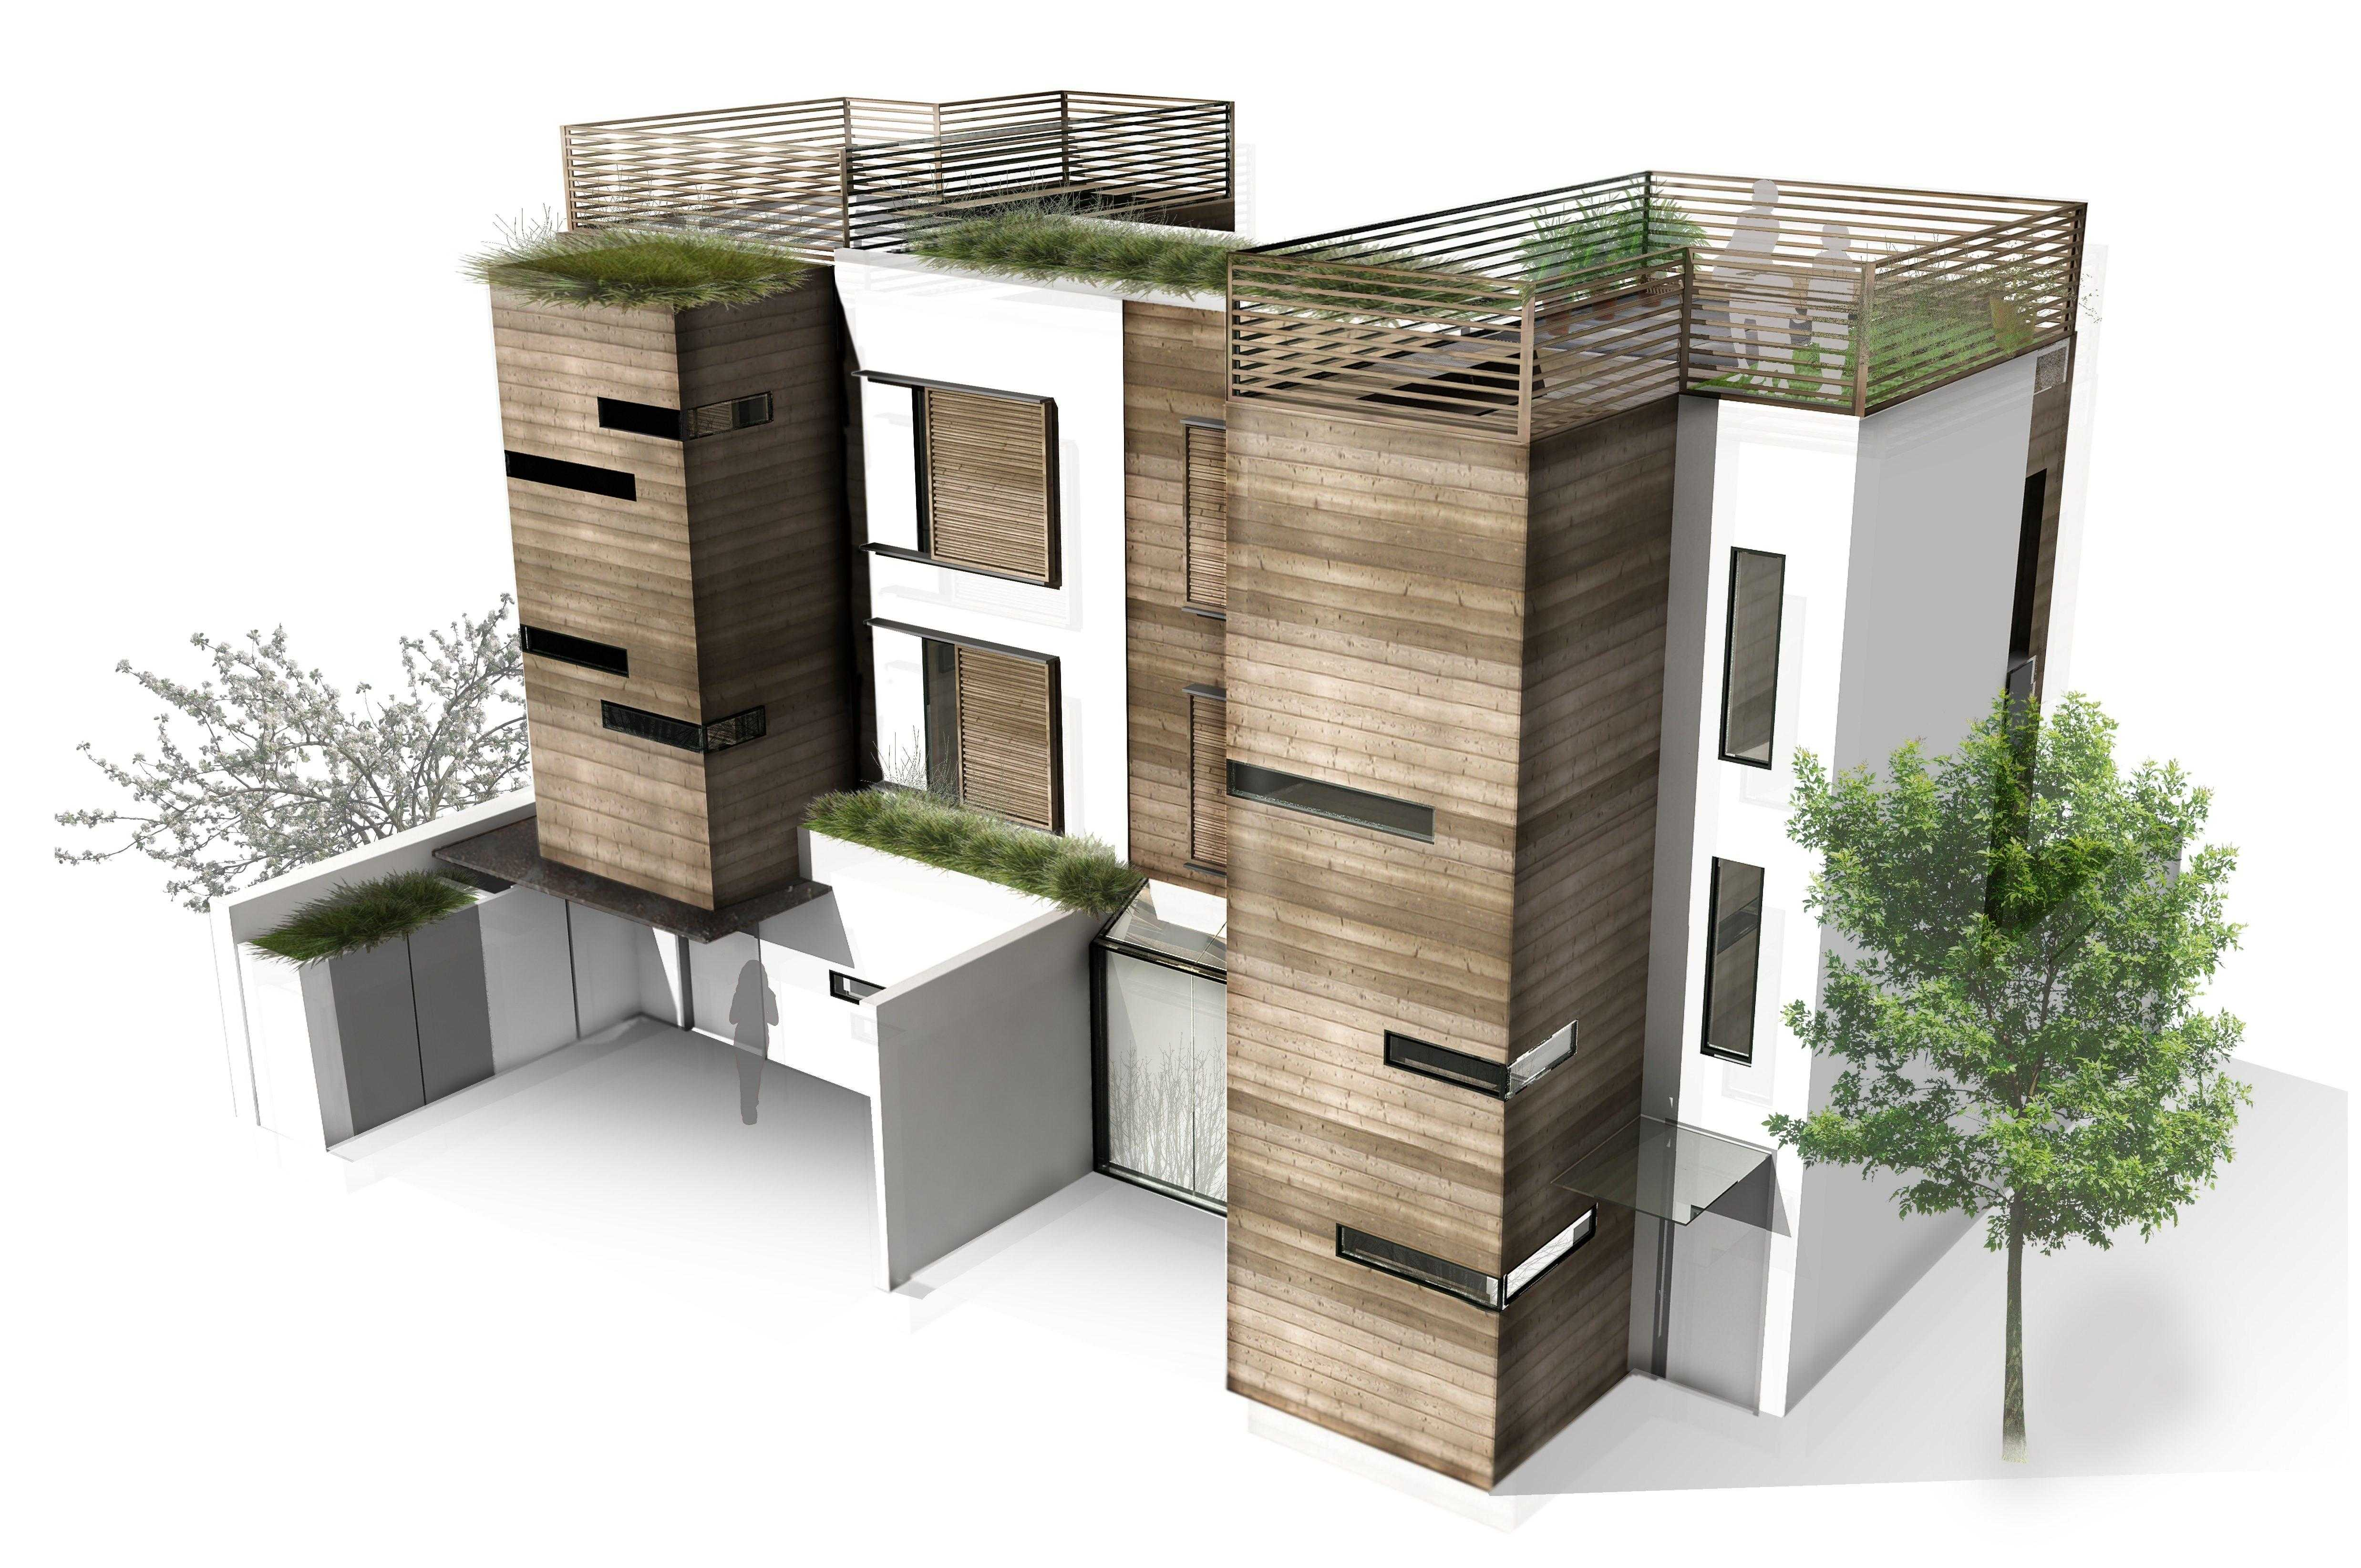 Healthy house concept and masterplan nicolas tye architects for Concept homes